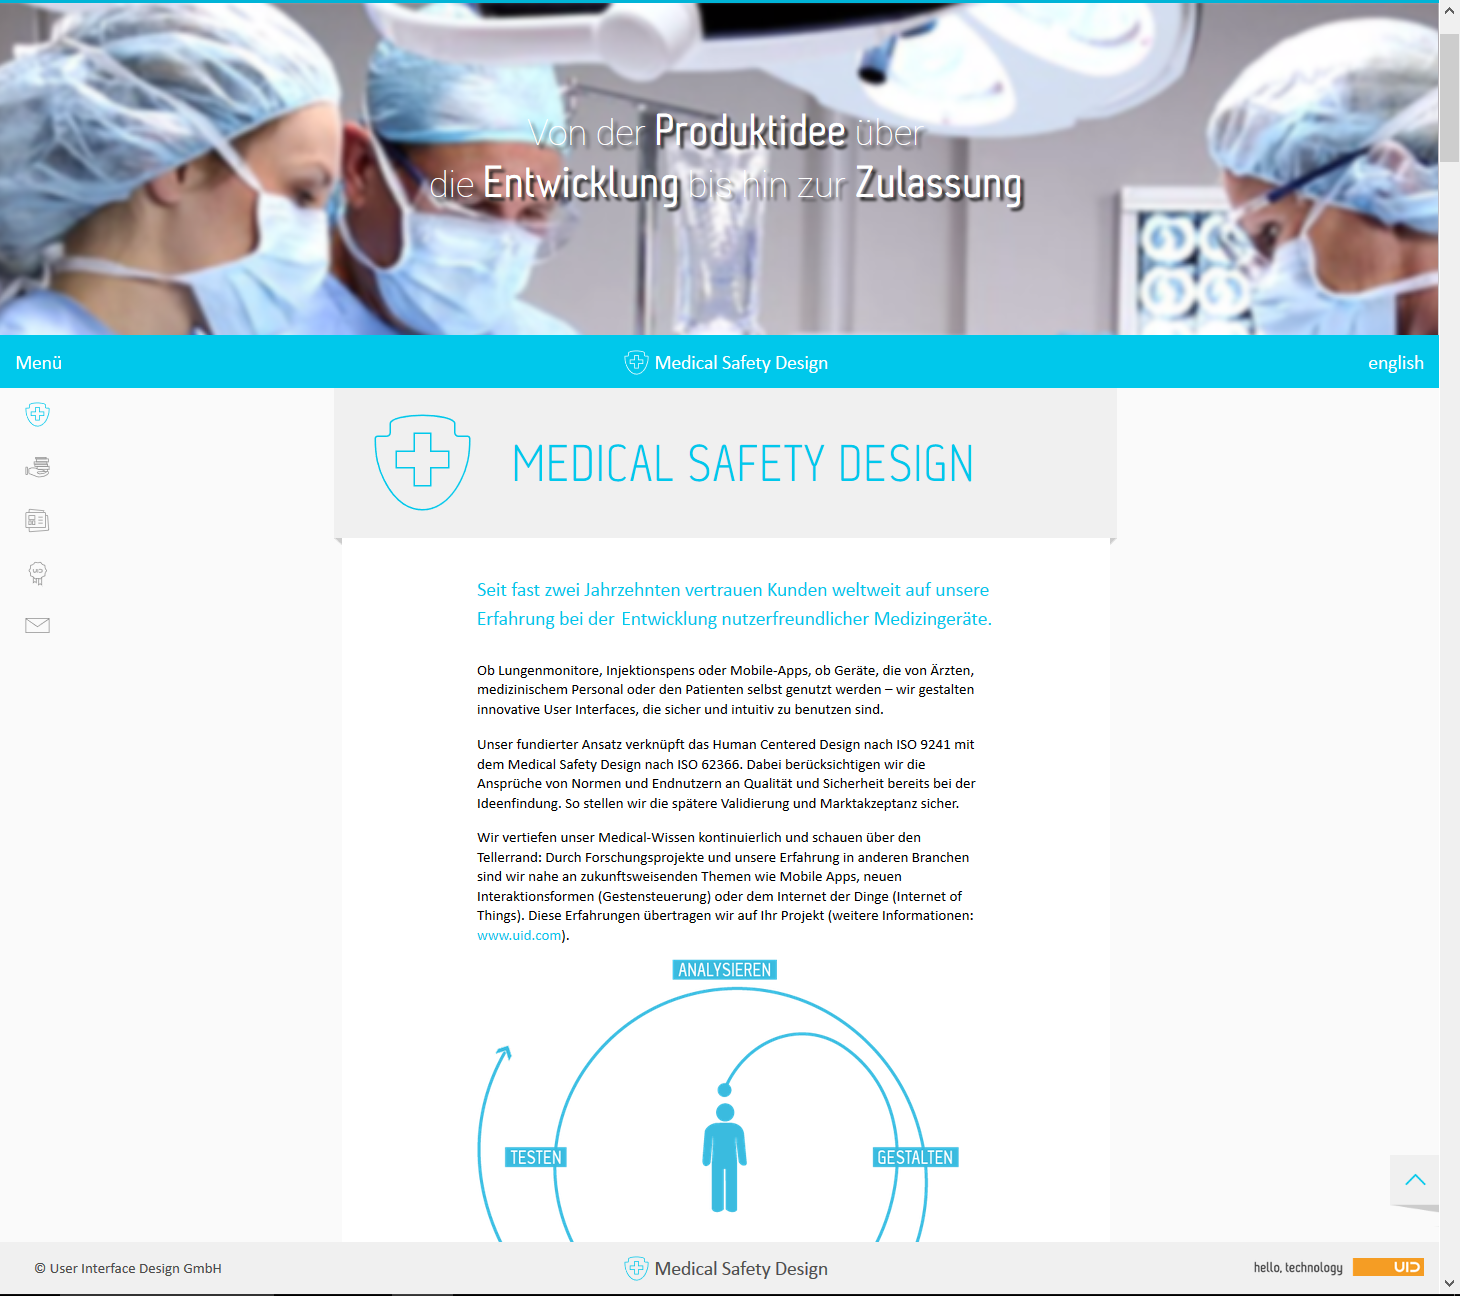 UID Microsite Medical Safety Design